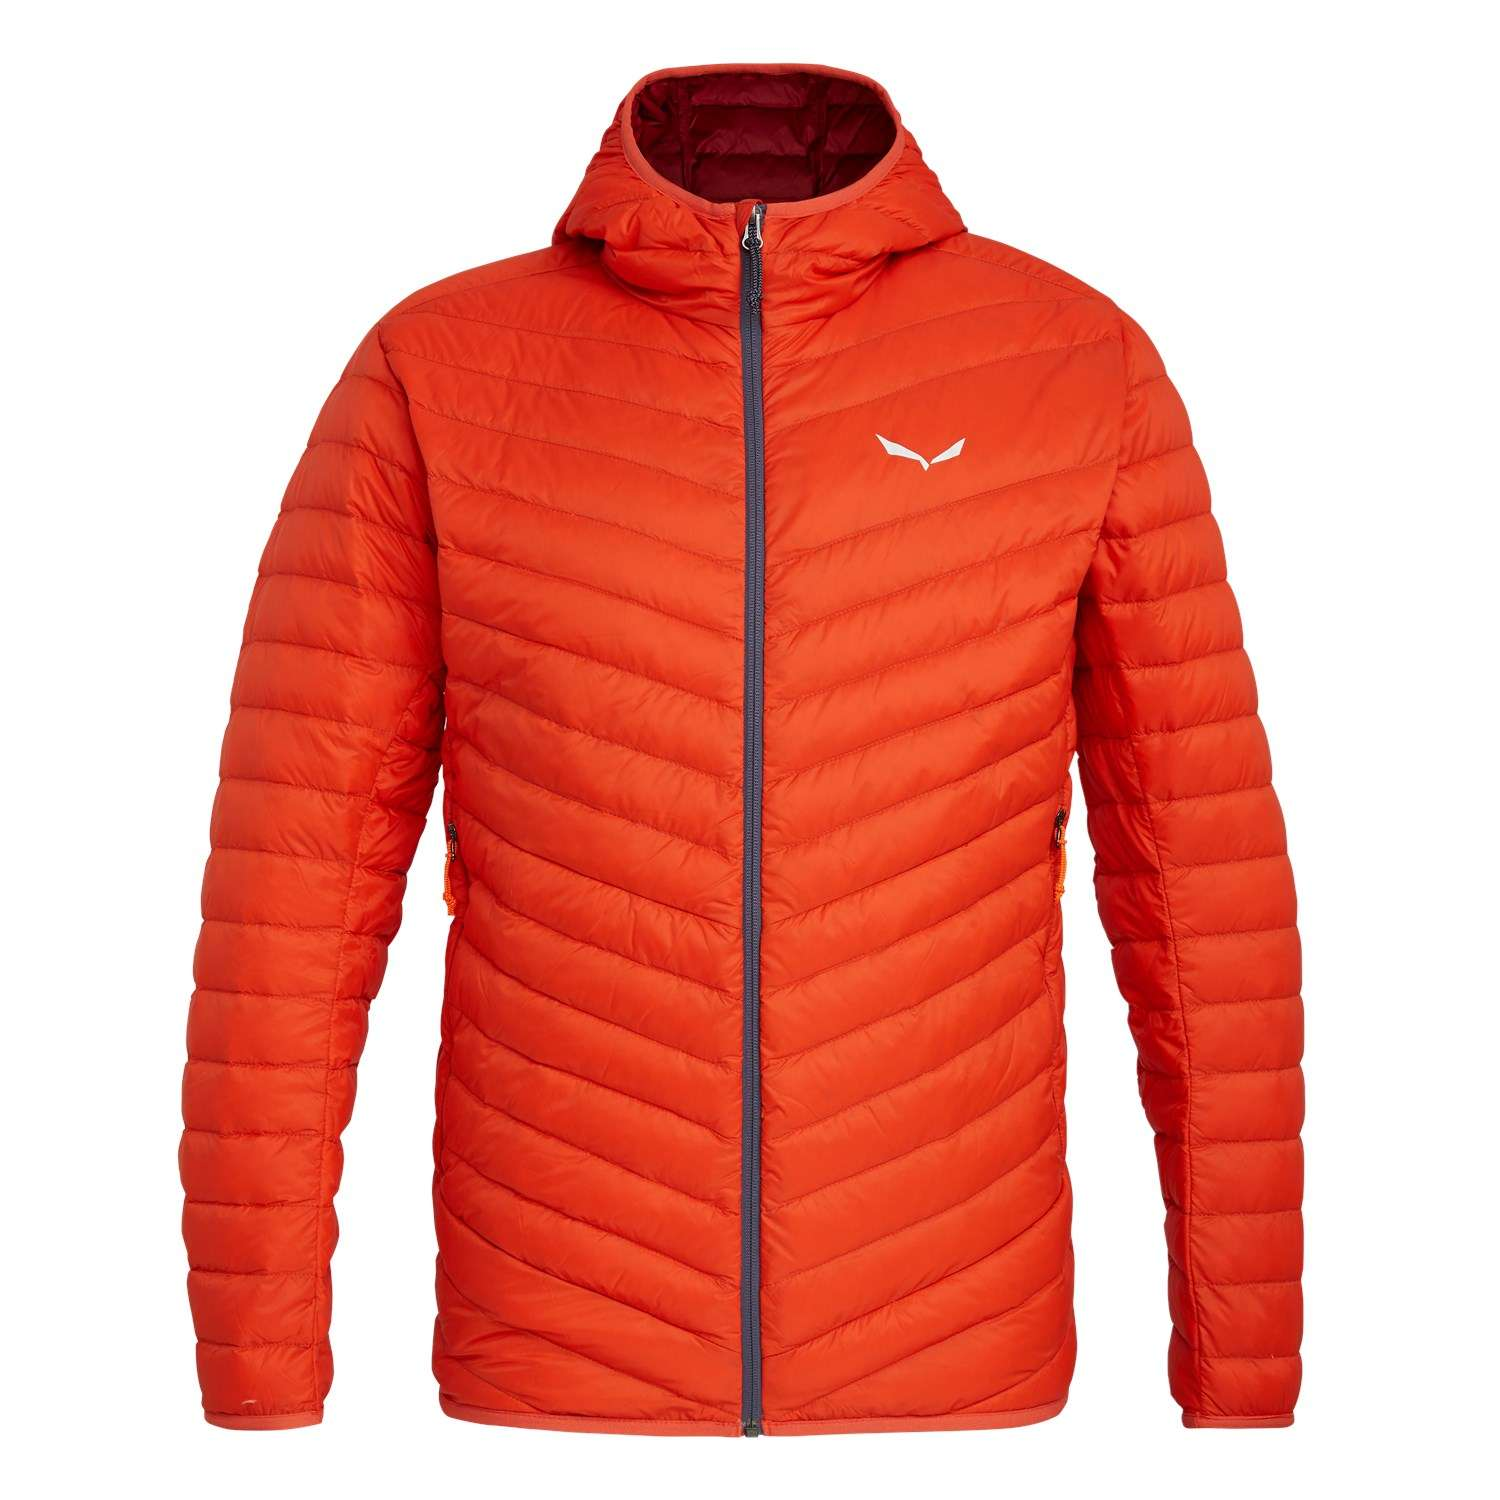 LAGAZUOI 3 DOUDOUNE MEN JACKET Salewa (Malta)